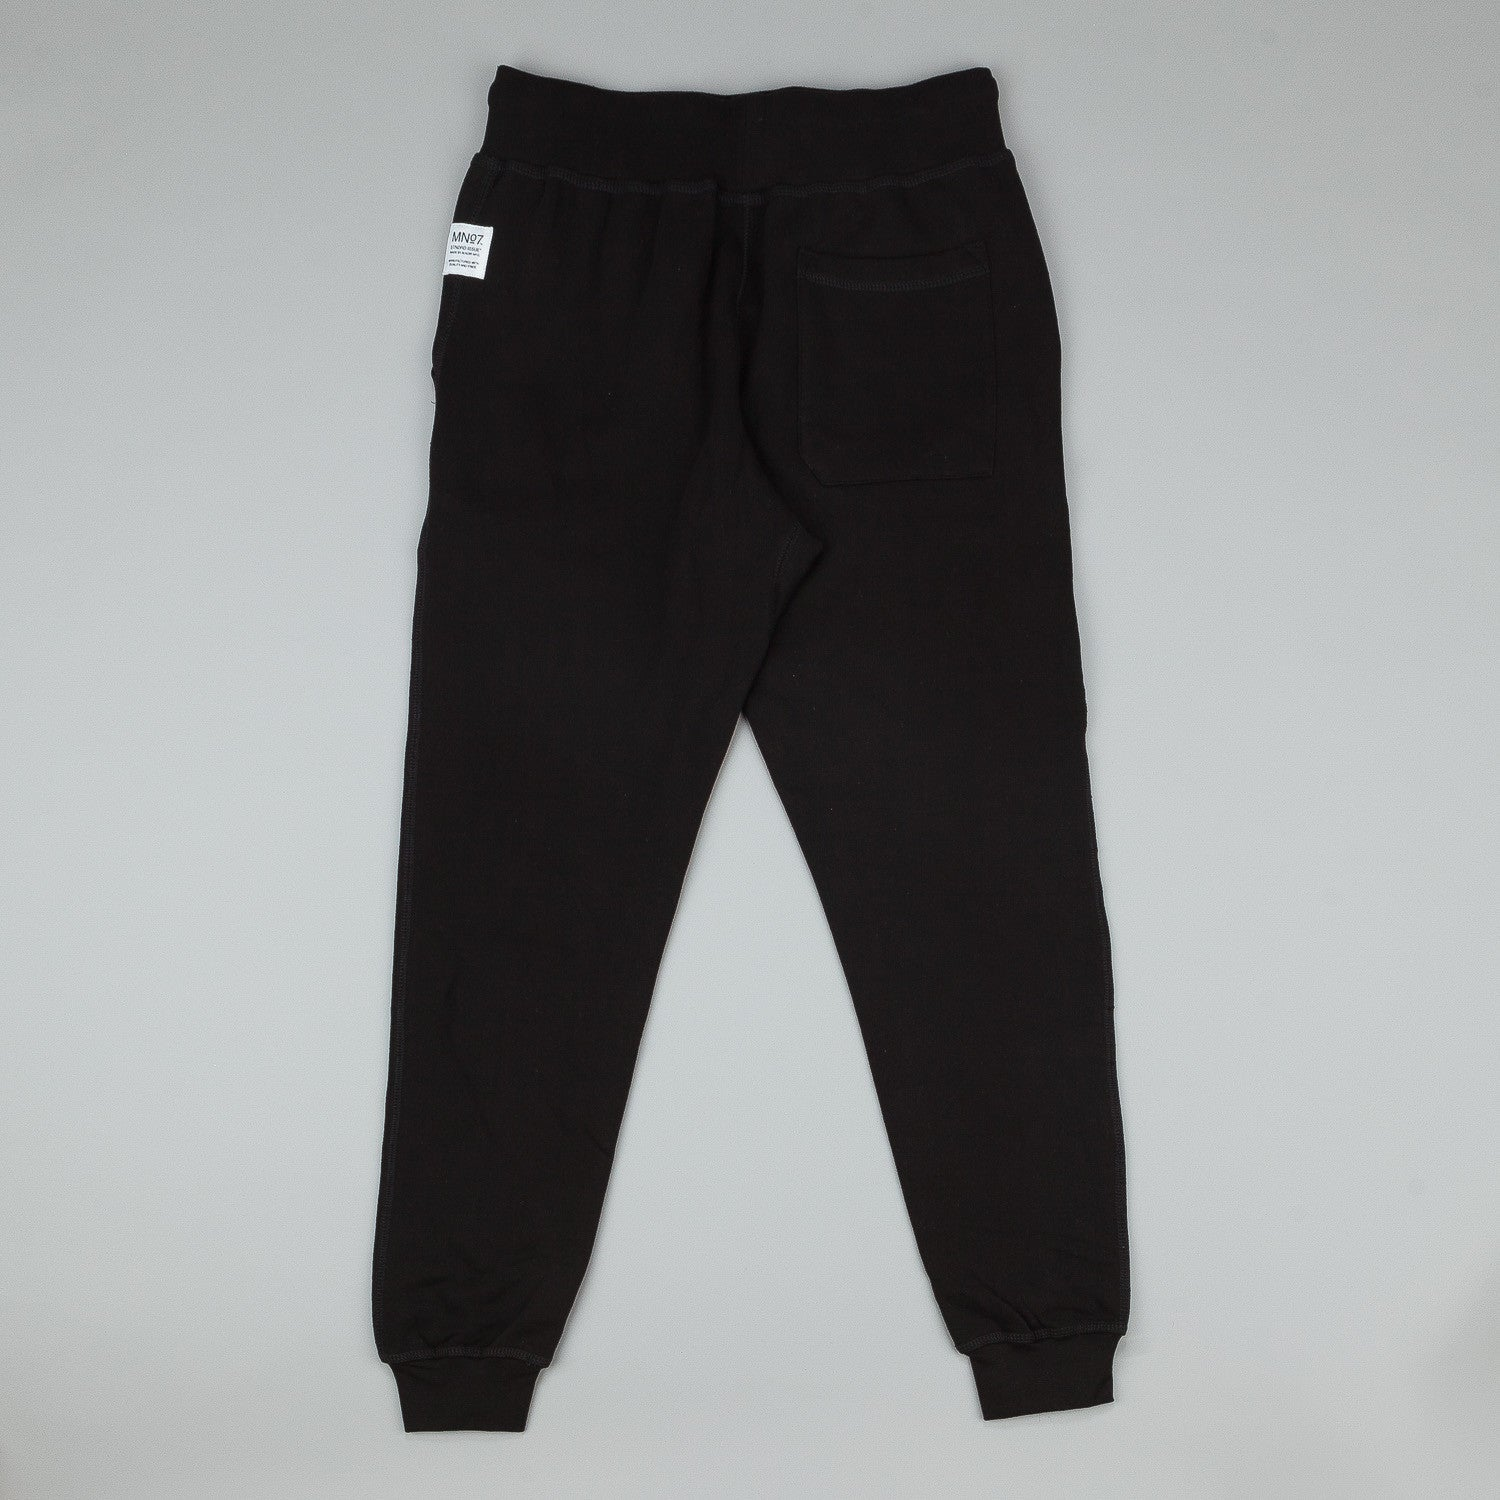 MN07 Dead Plant Sweatpants - Black